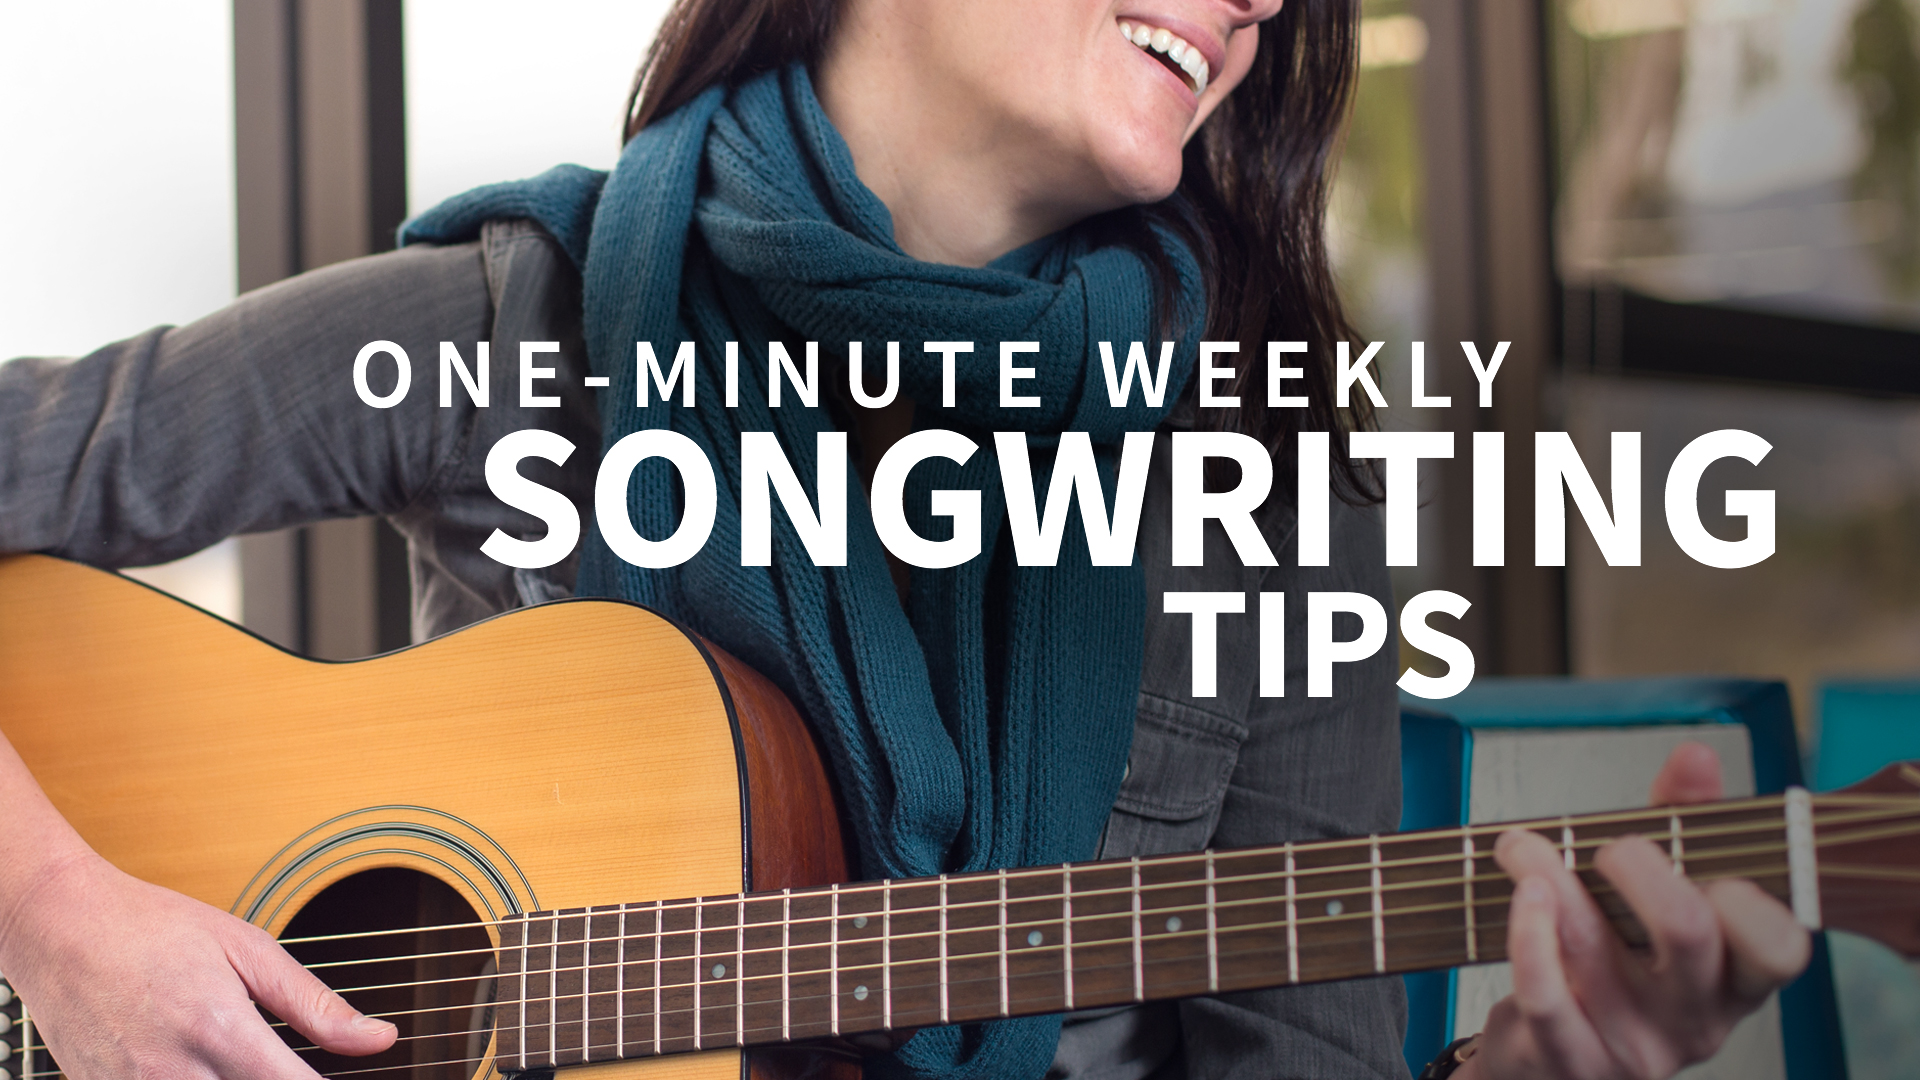 50/50: The simplest and best split: One-Minute Weekly Songwriting Tips